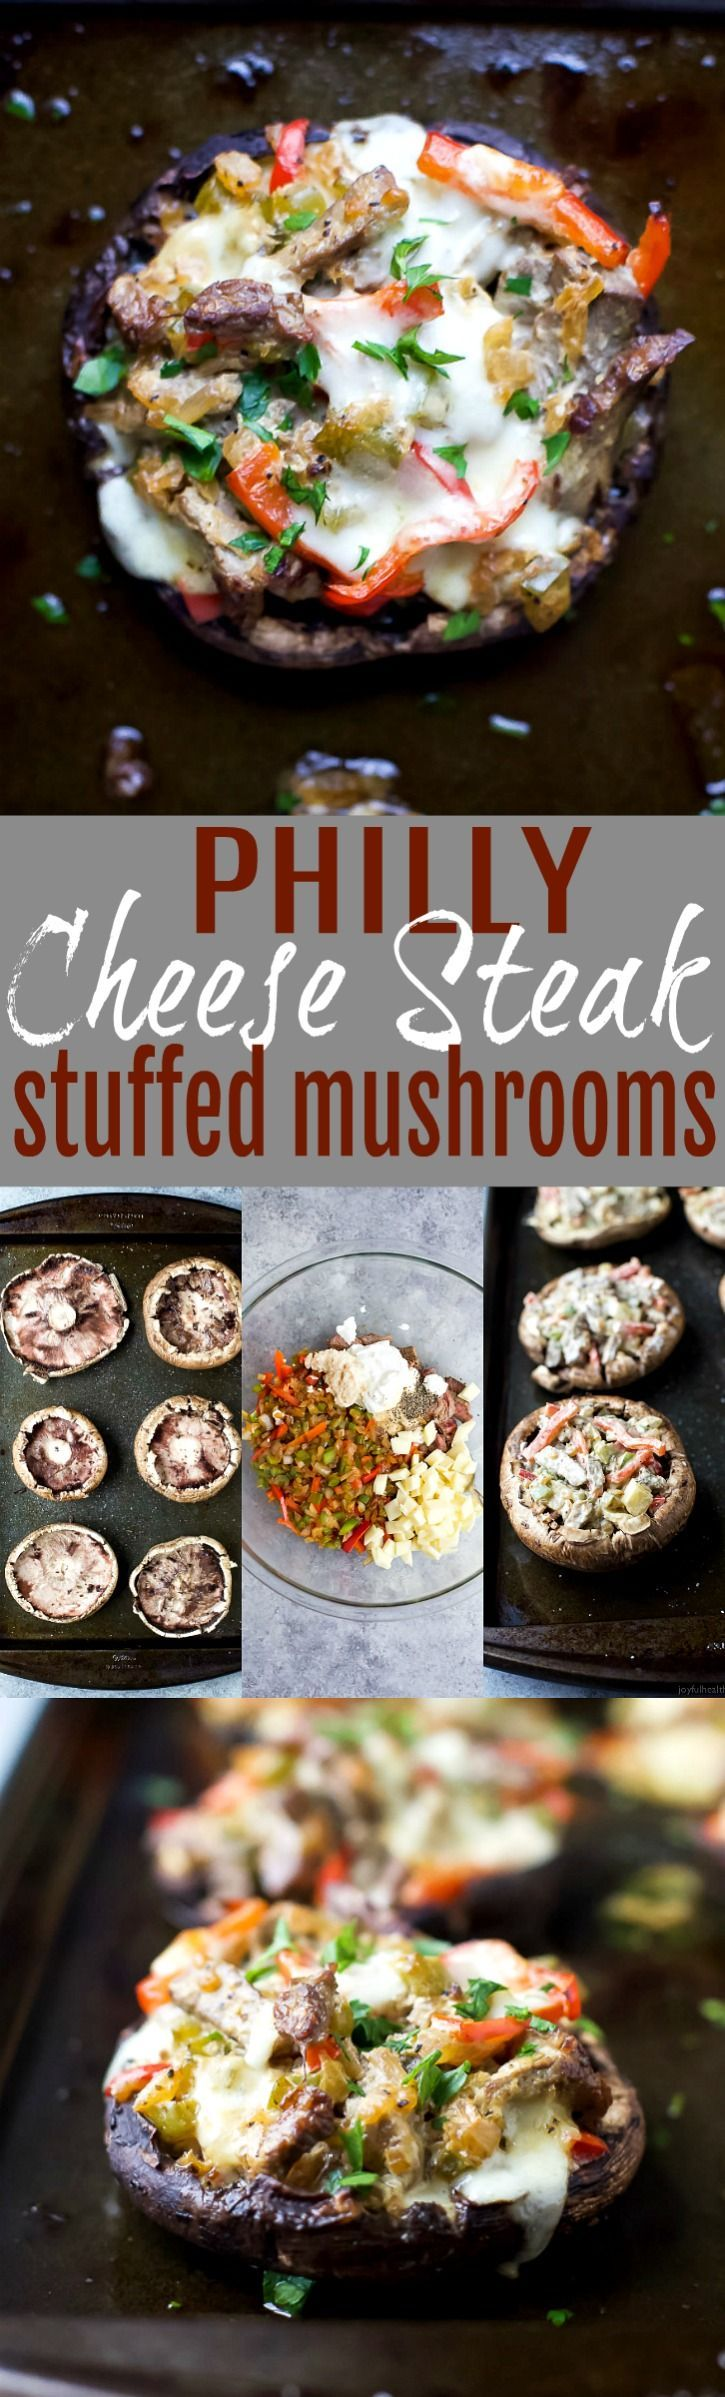 Easy Low Carb Philly Cheese Steak Stuffed Mushrooms filled with tender steak, sautéed vegetables and gooey cheese. These Stuffed Mushrooms are done in 30 minutes and loaded with flavor!